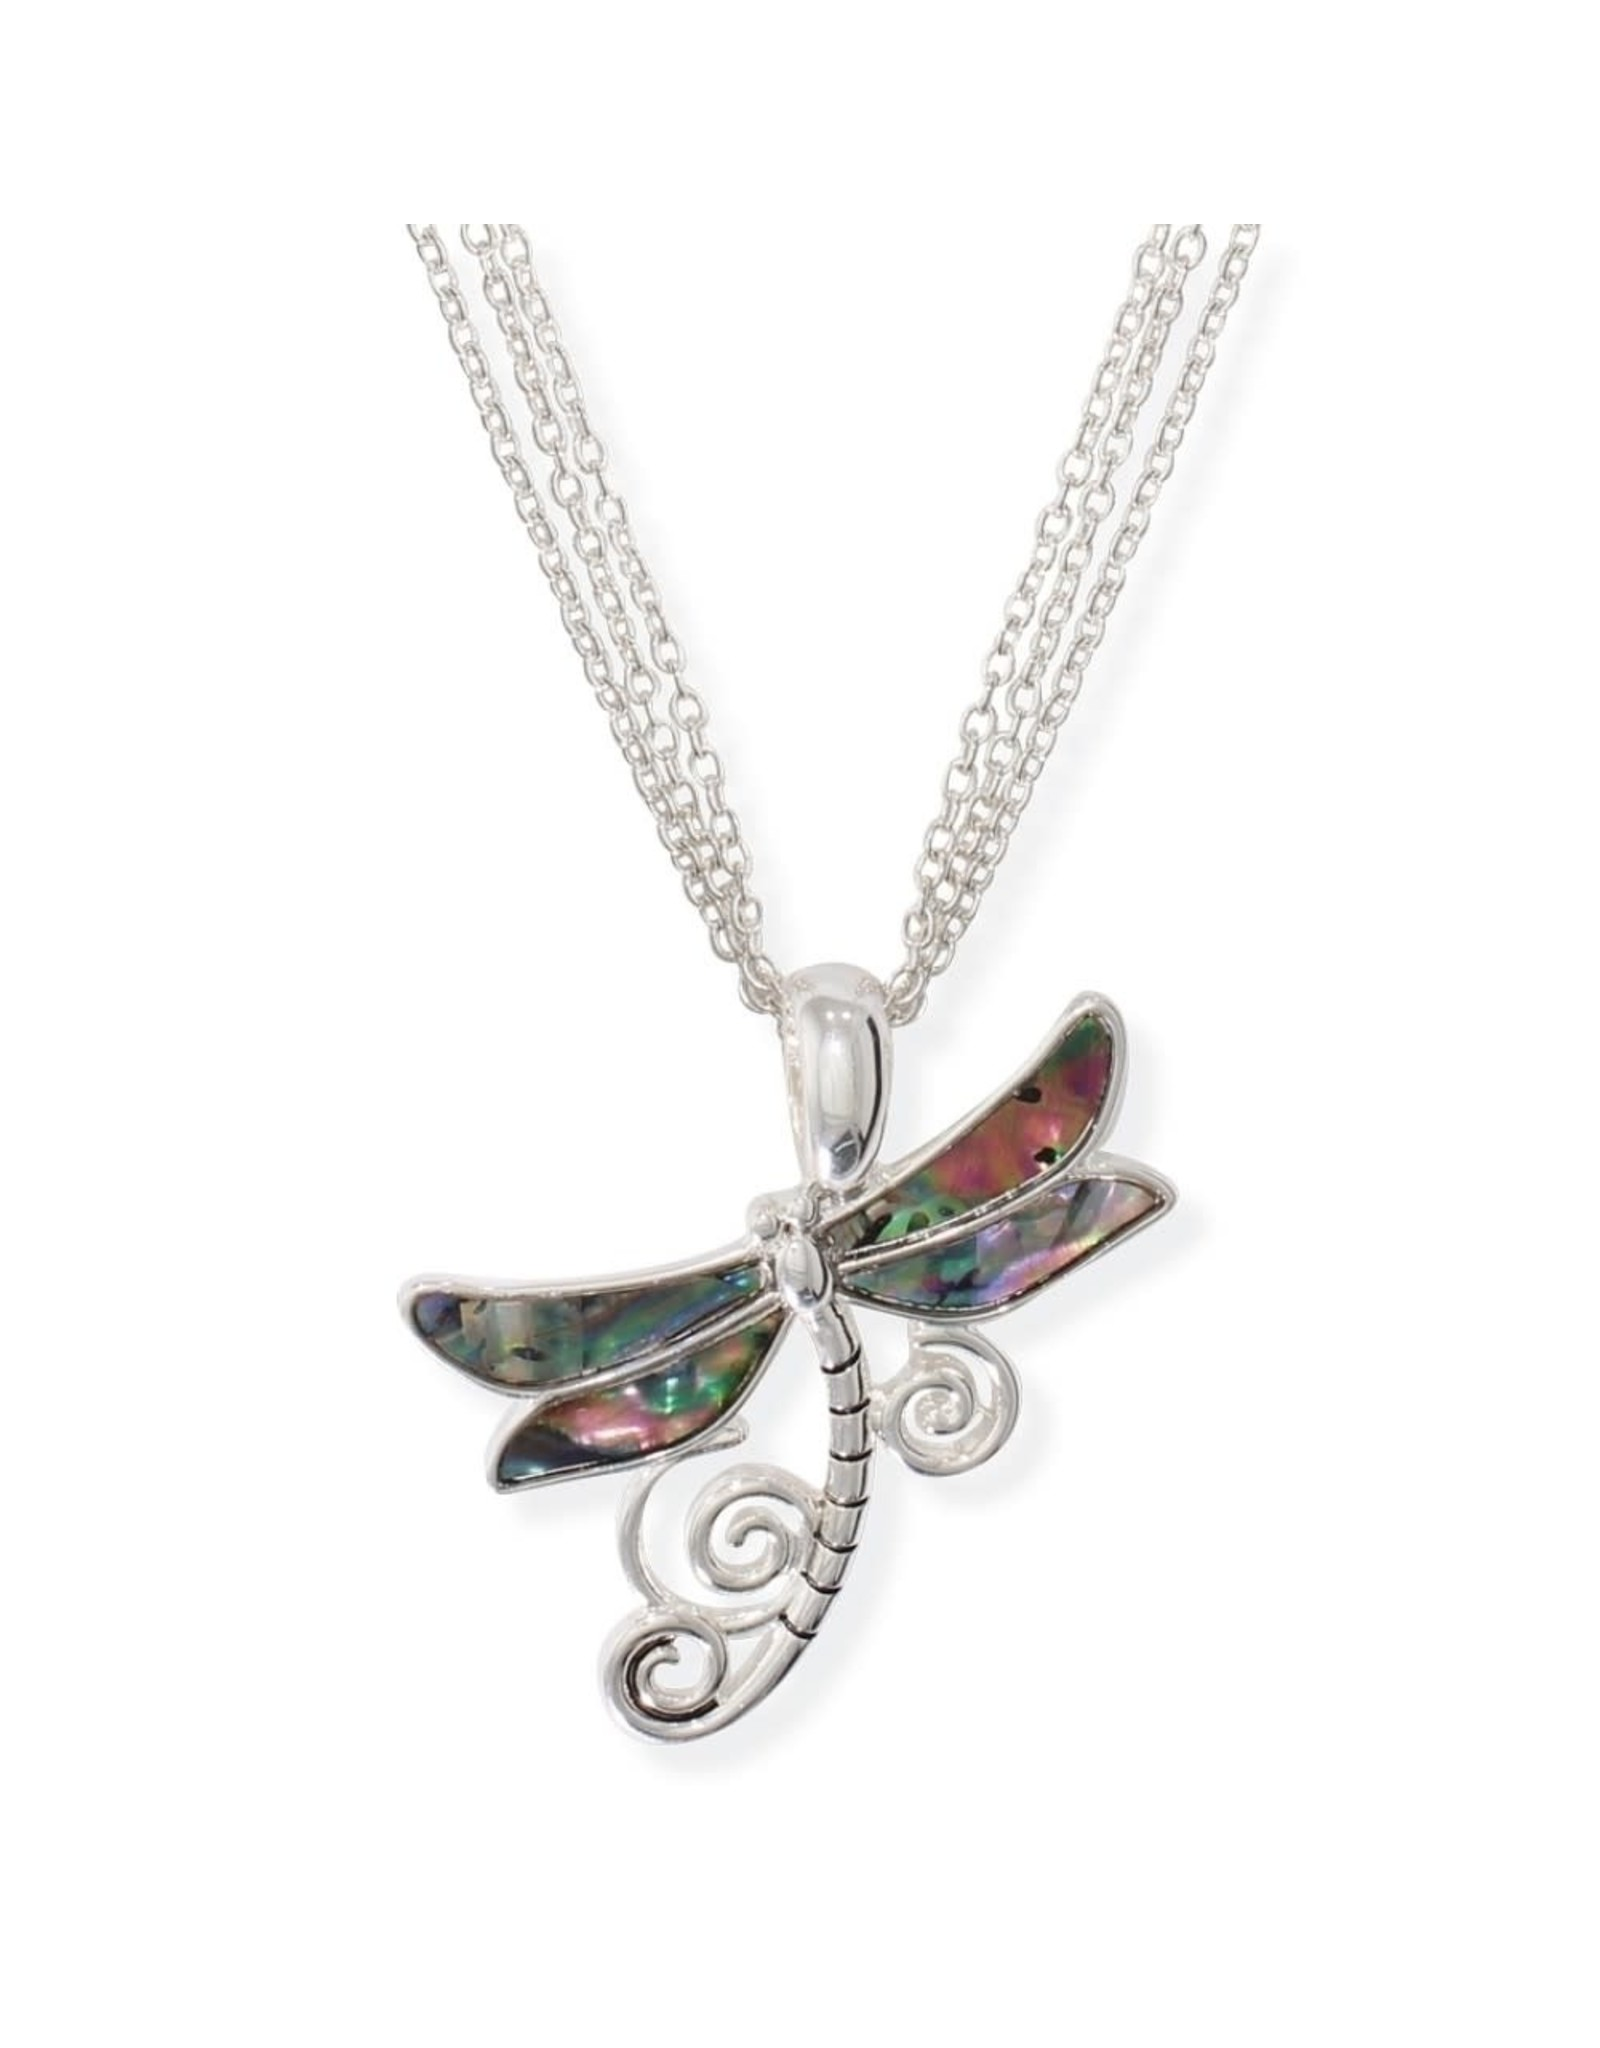 Periwinkle by Barlow 17 Inch  Abalone Inlay Dragonfly Necklace